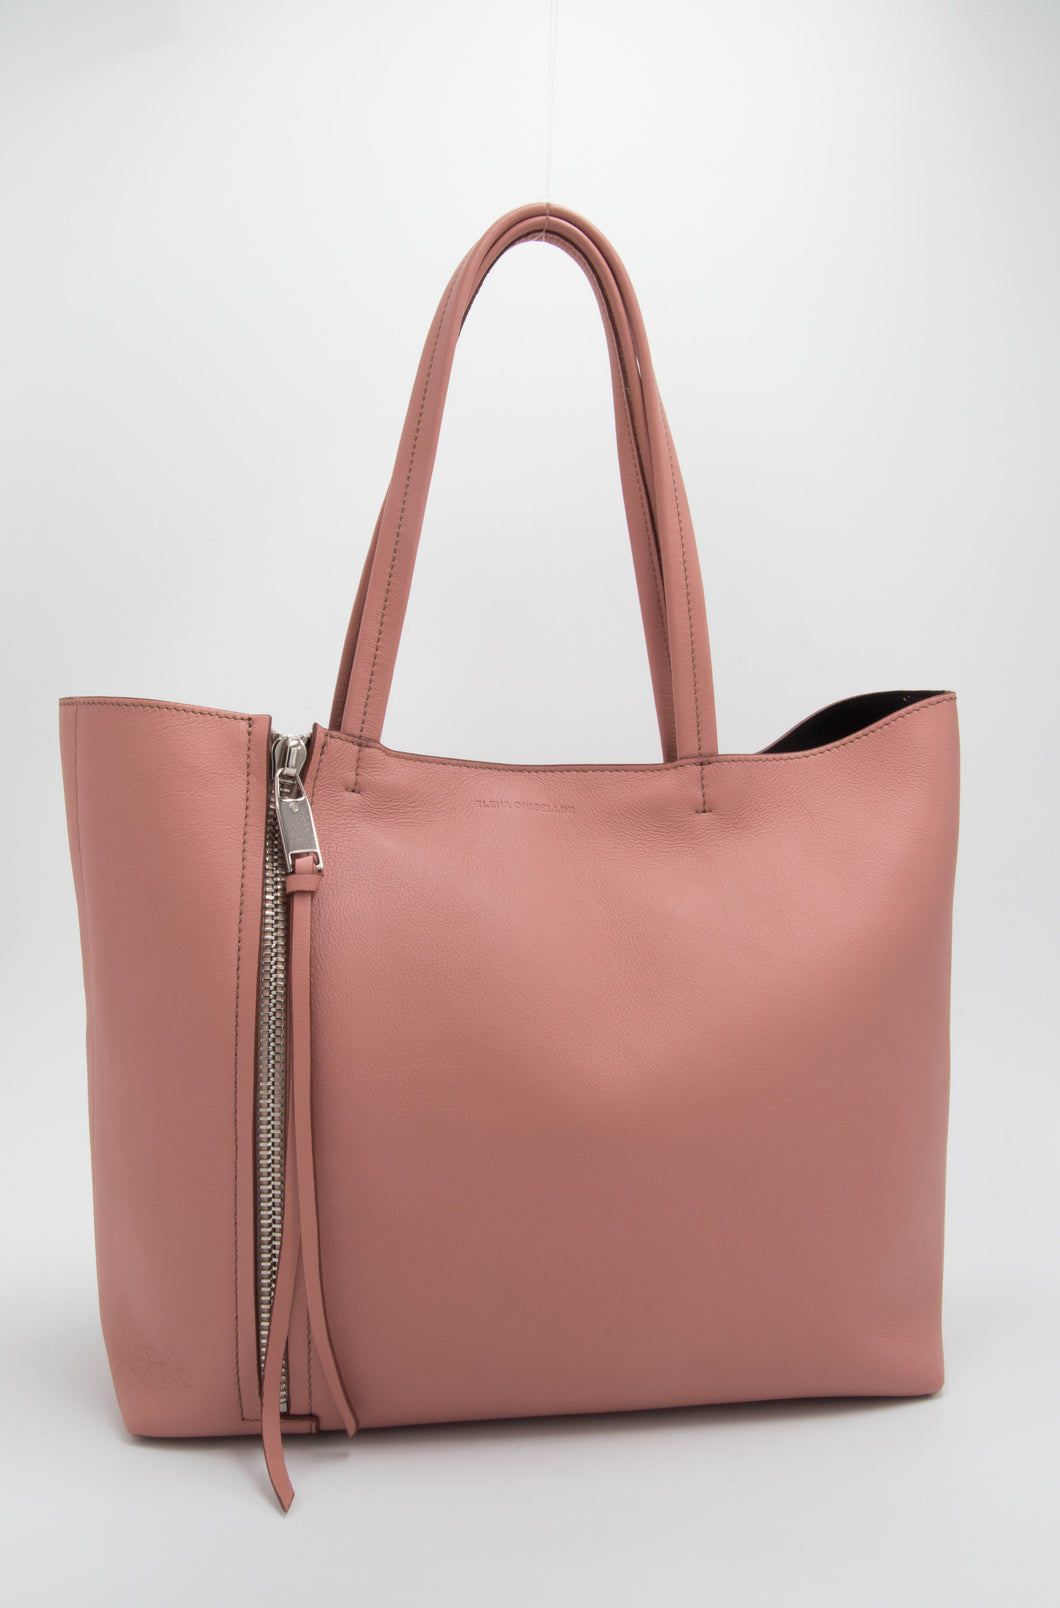 Elena Ghisellini – Elegant Style Bag With Leather Shoulder Strap